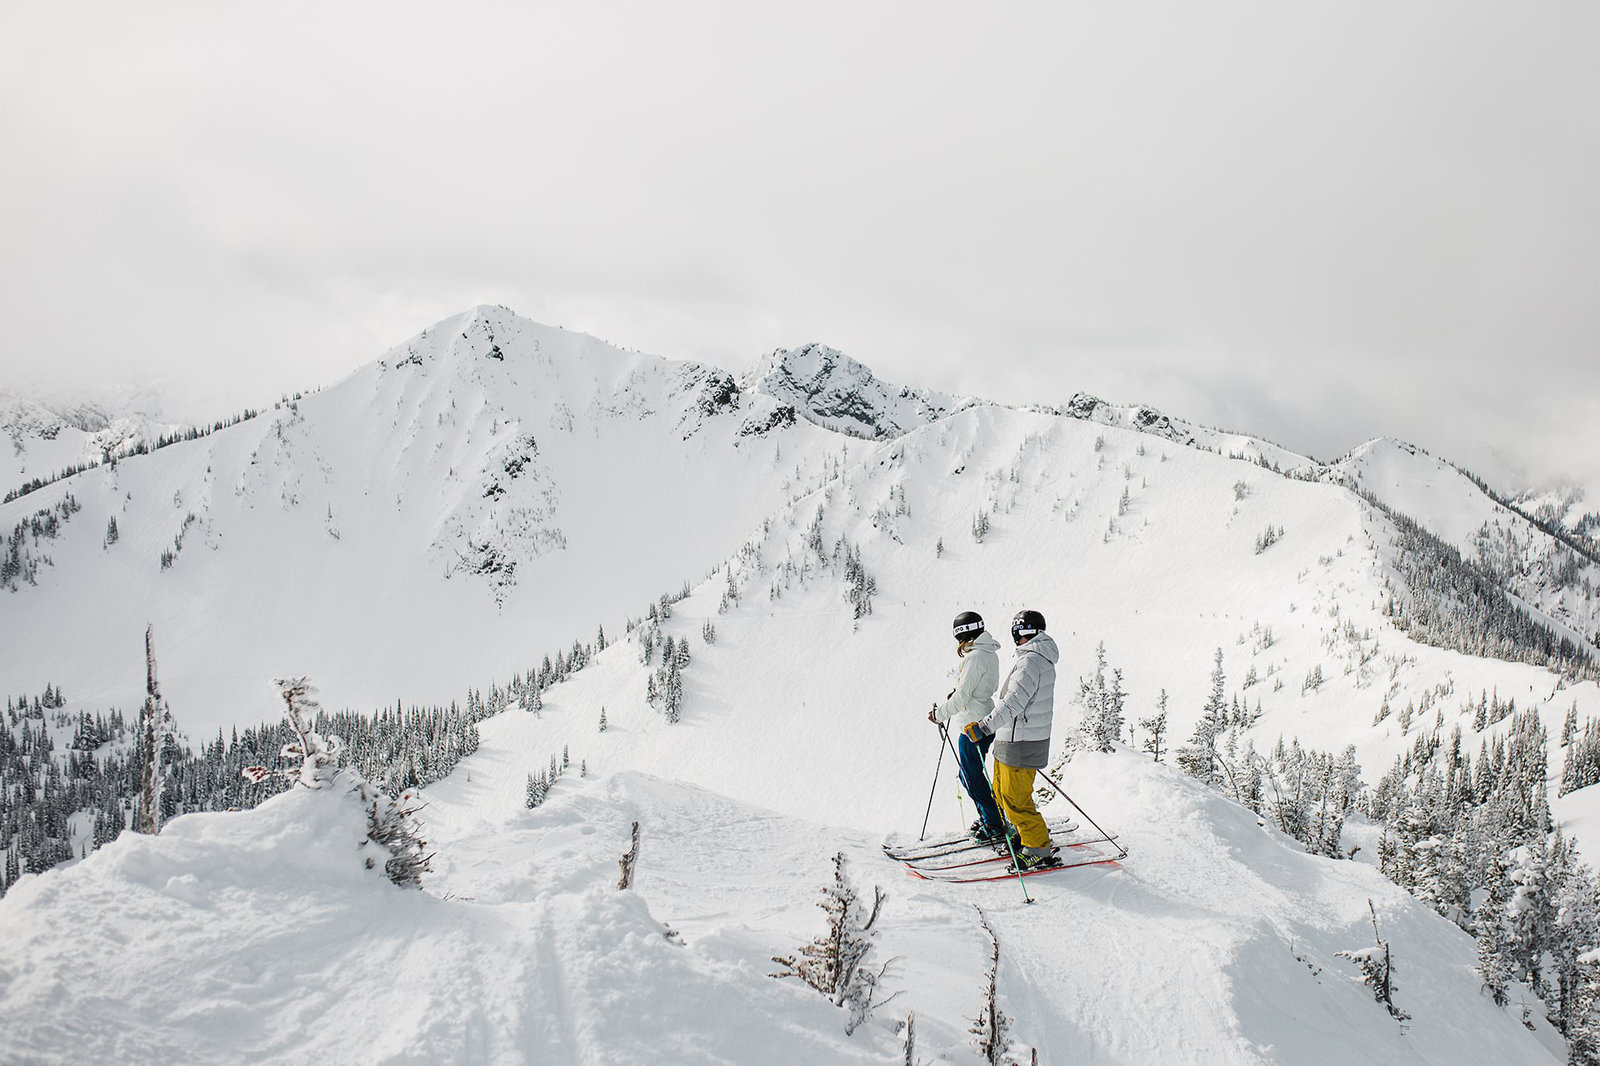 a skiing engagement session at crystal mountain near mt rainier photographed by PNW adventure elopement photographer amy galbraith